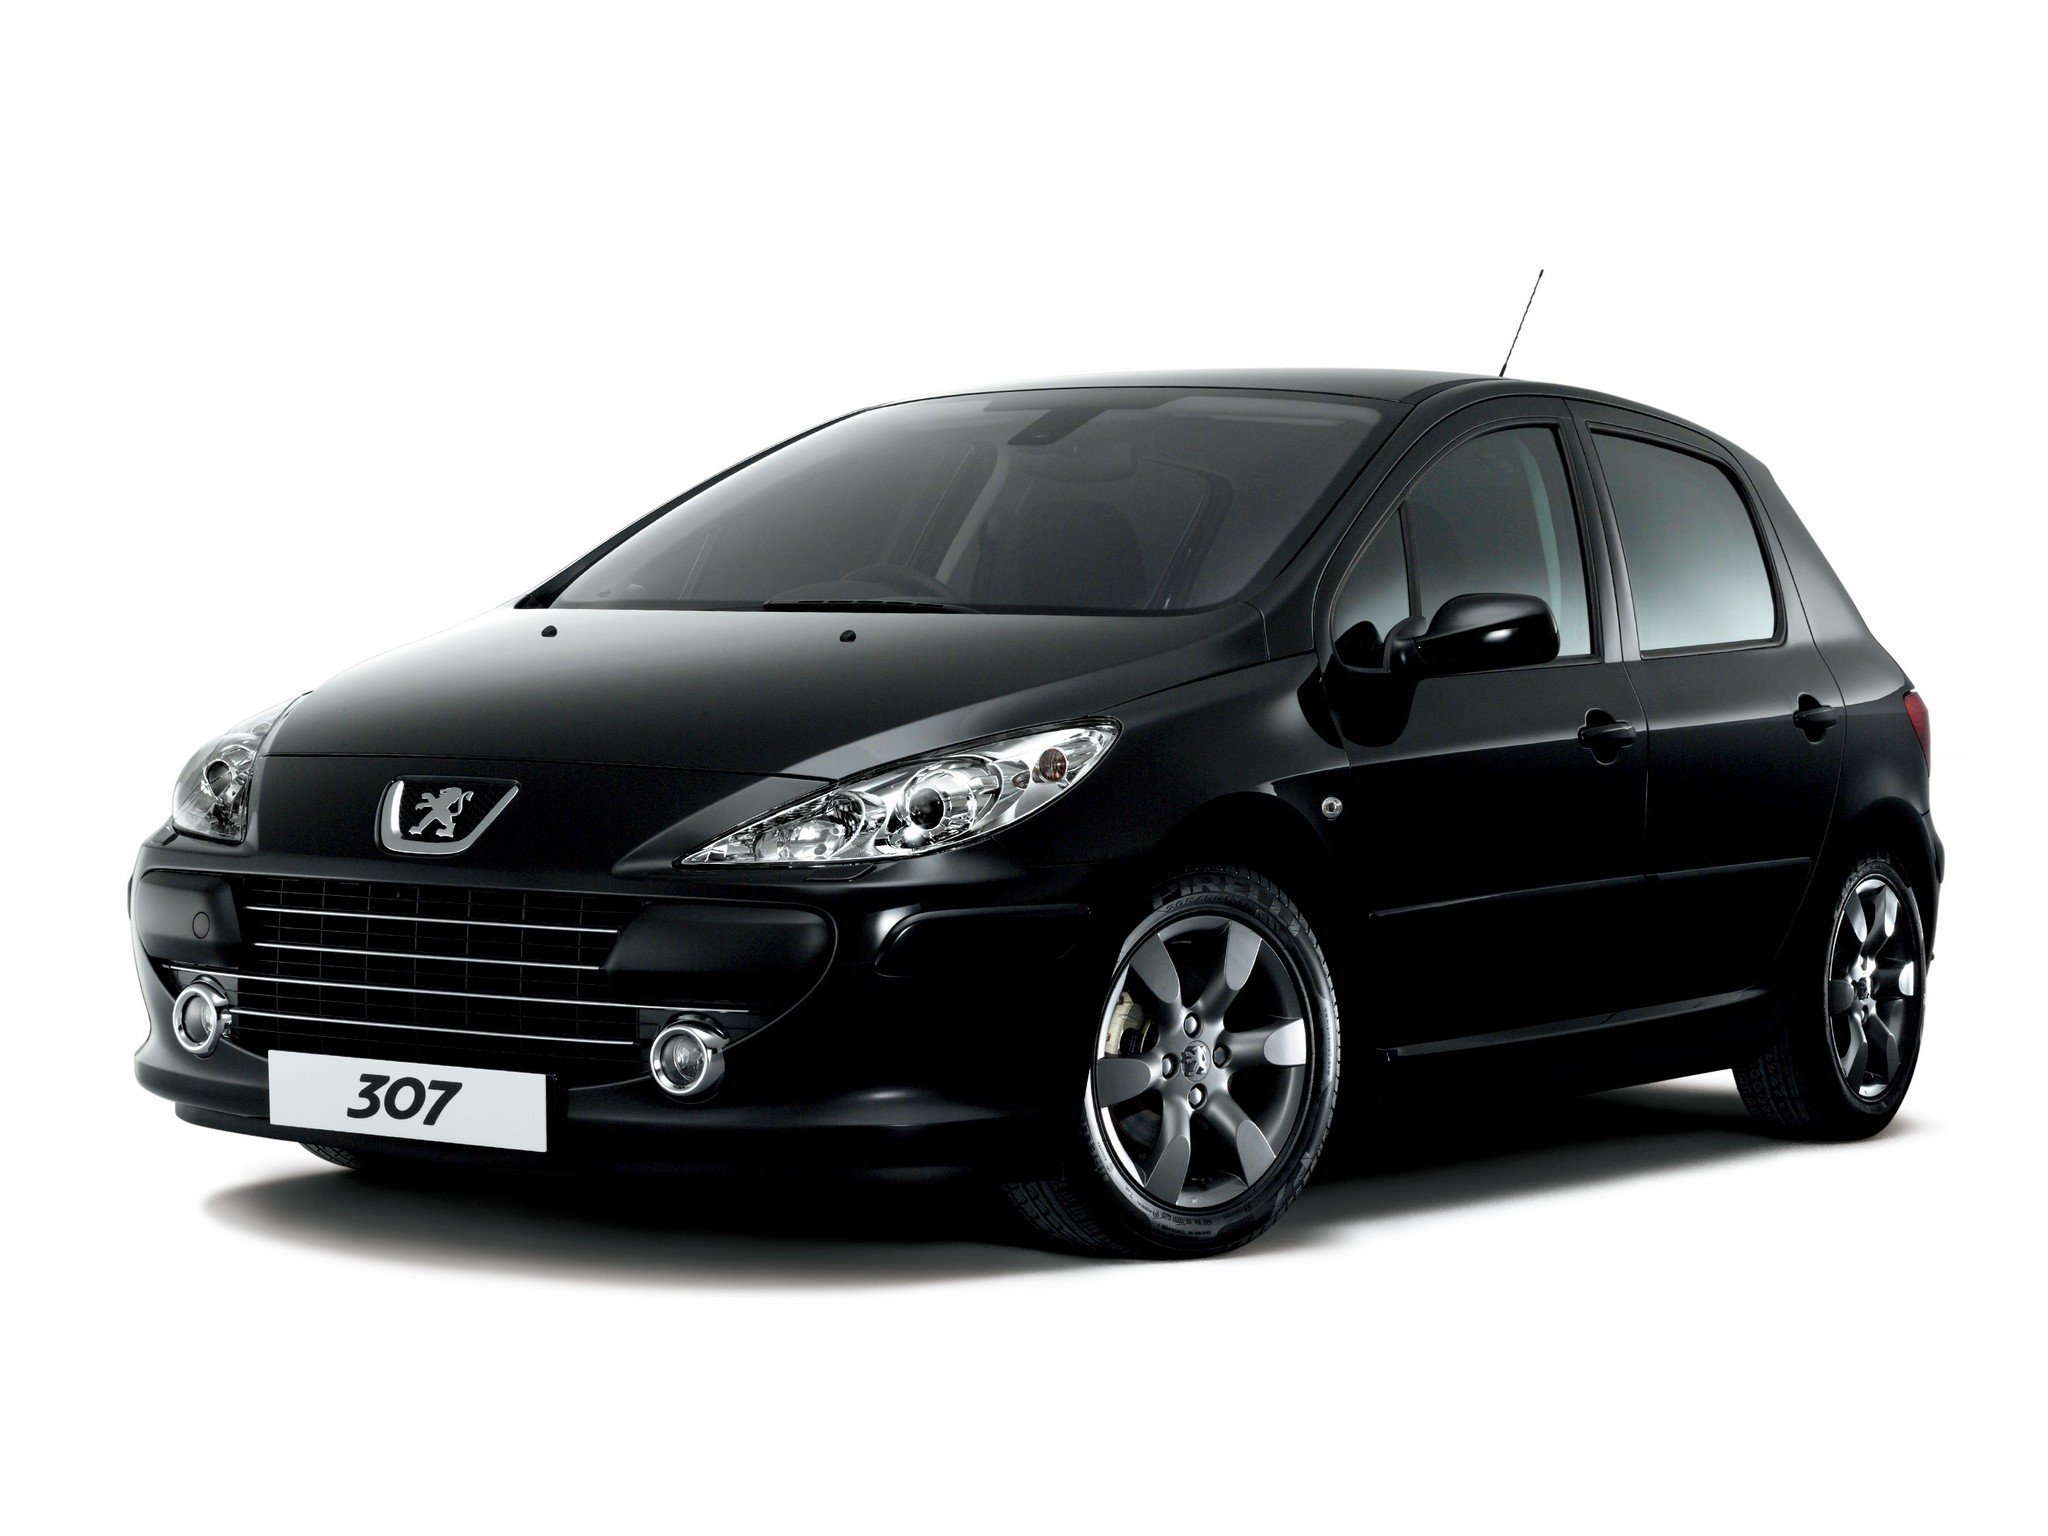 peugeot 307 5 doors 2001 2002 2003 2004 2005 autoevolution. Black Bedroom Furniture Sets. Home Design Ideas